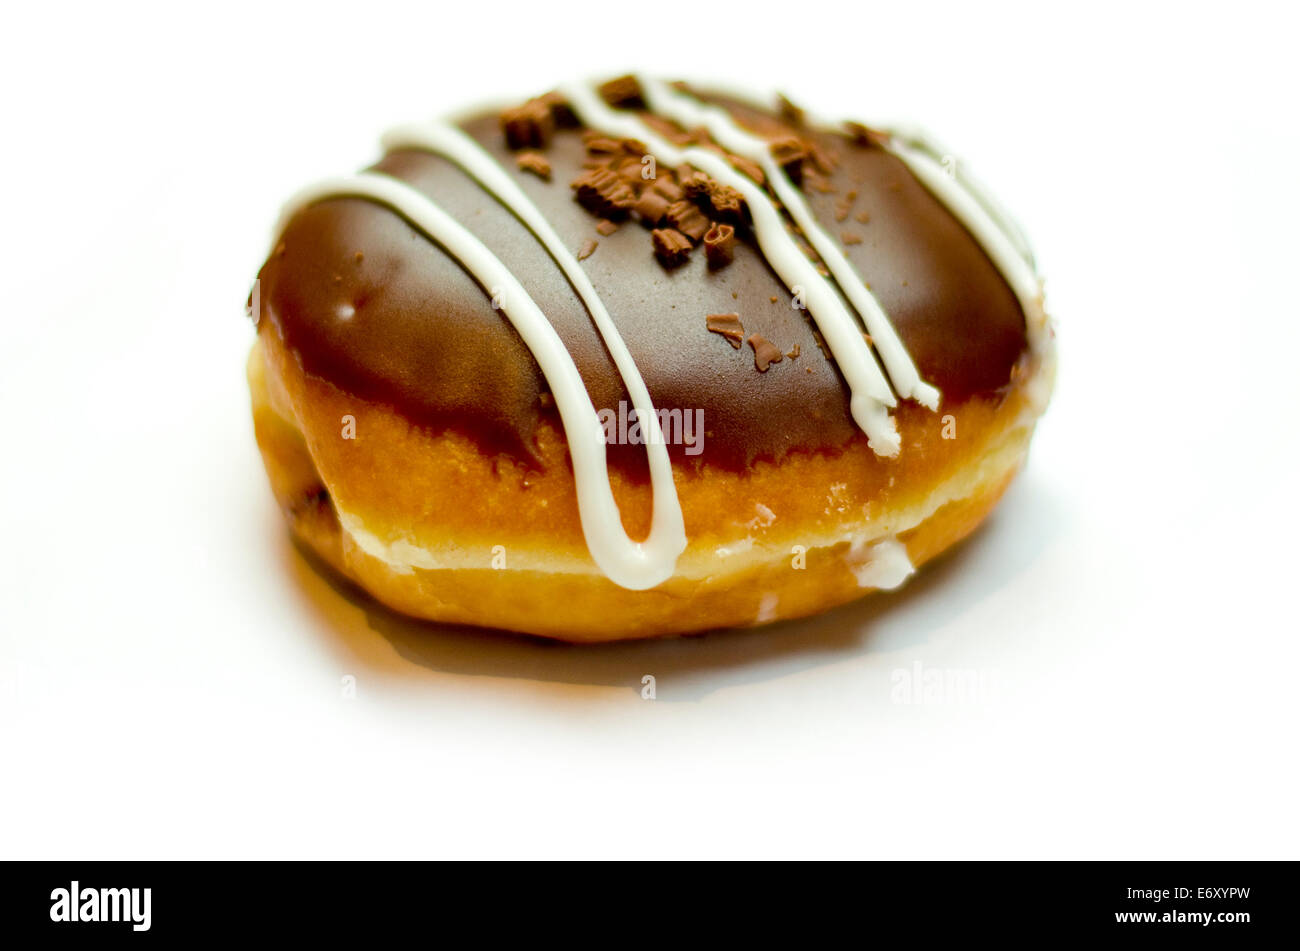 donut-isolated-on-a-white-background-E6X